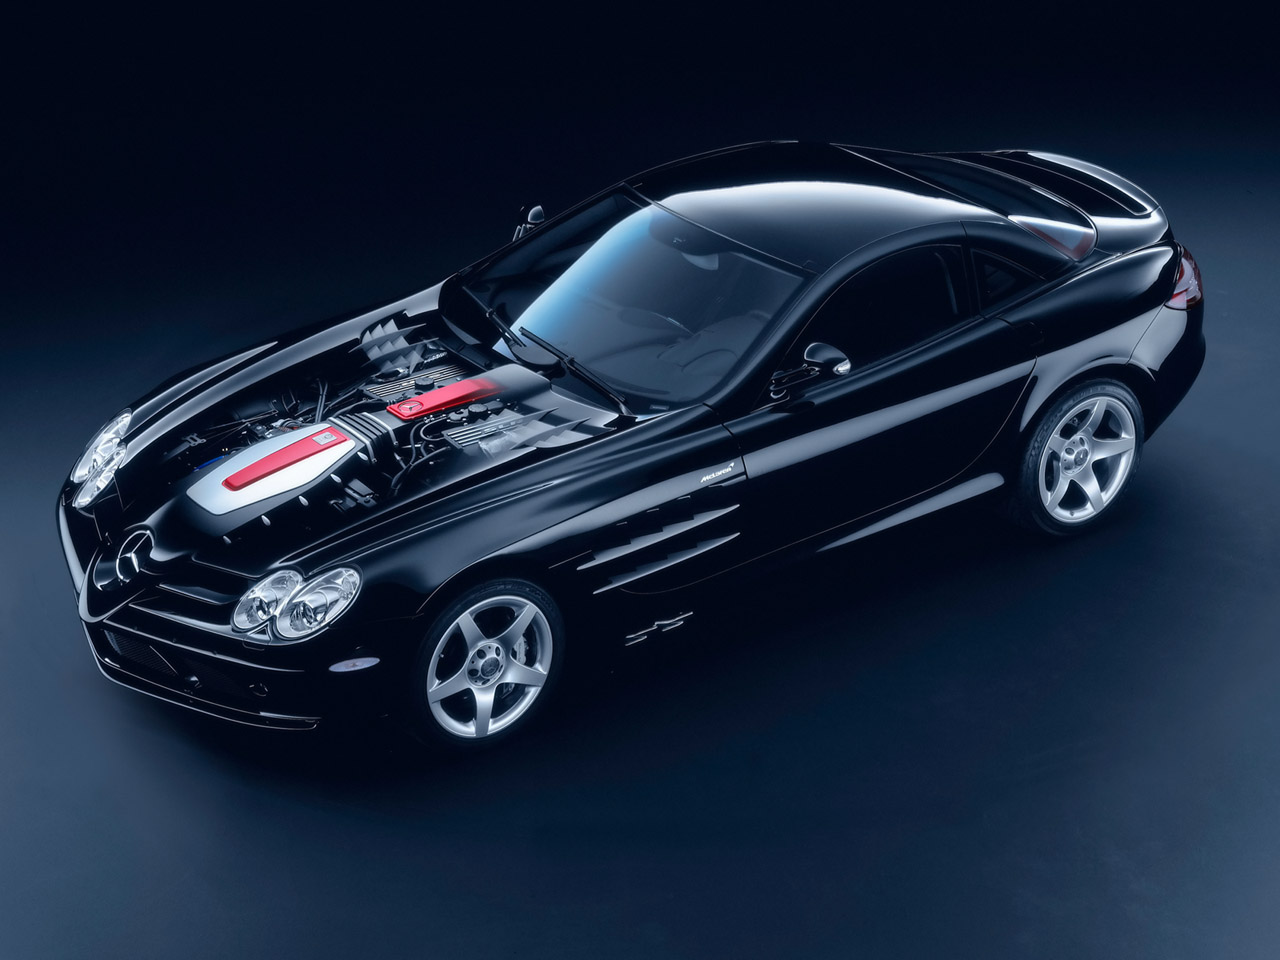 Wallpaper : 2005 Mercedes-Benz SLR McLaren